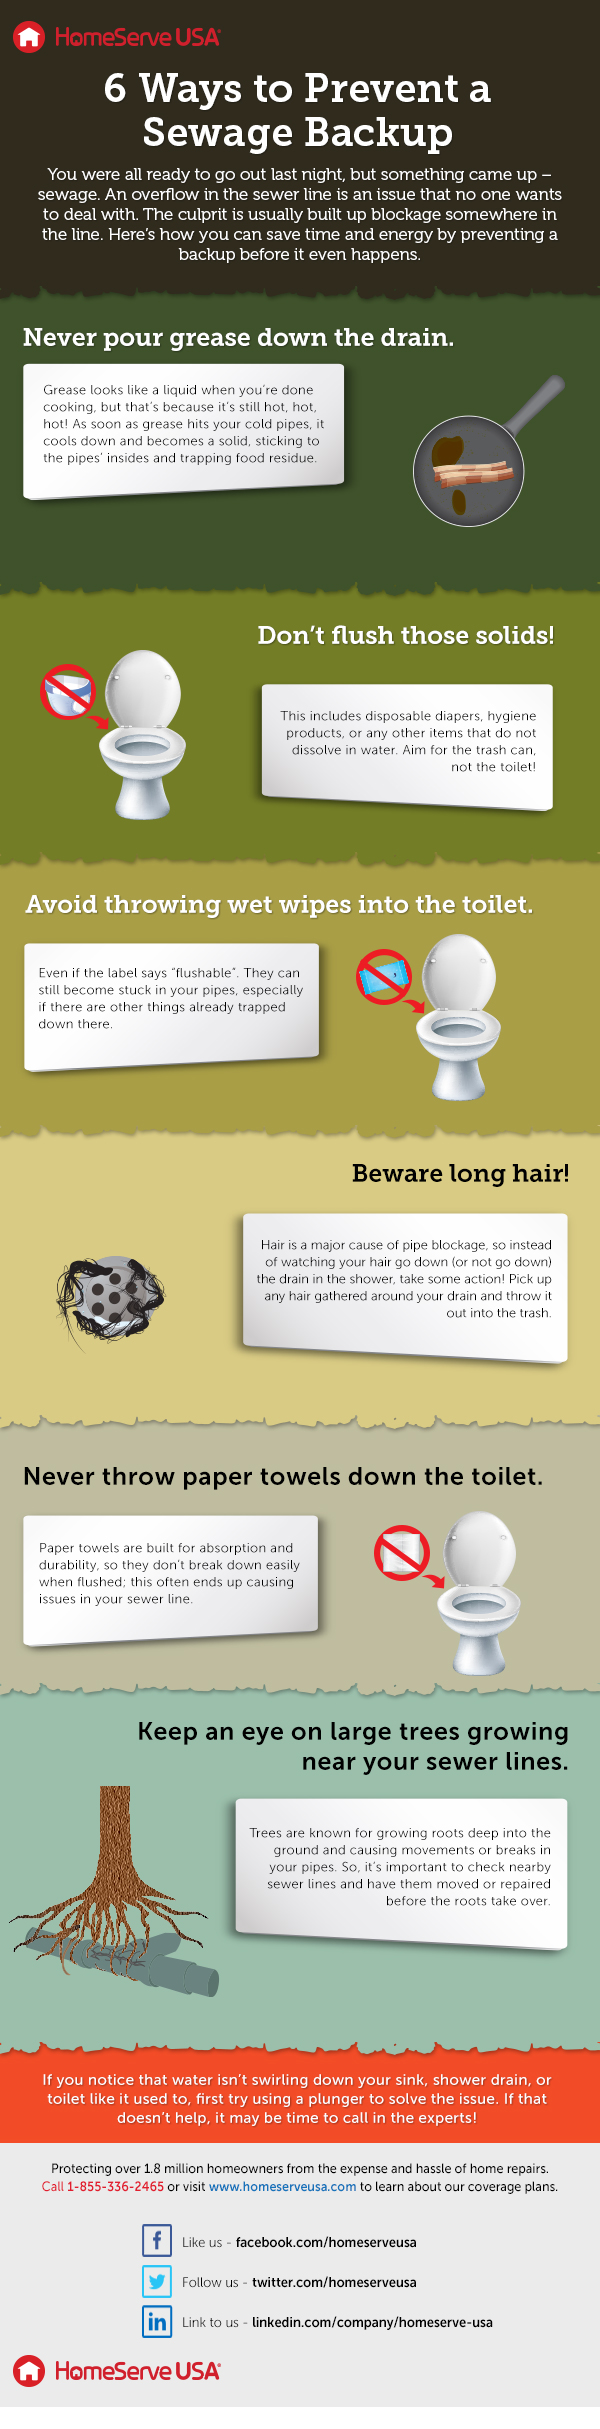 Sewage Backup Prevention Infographic